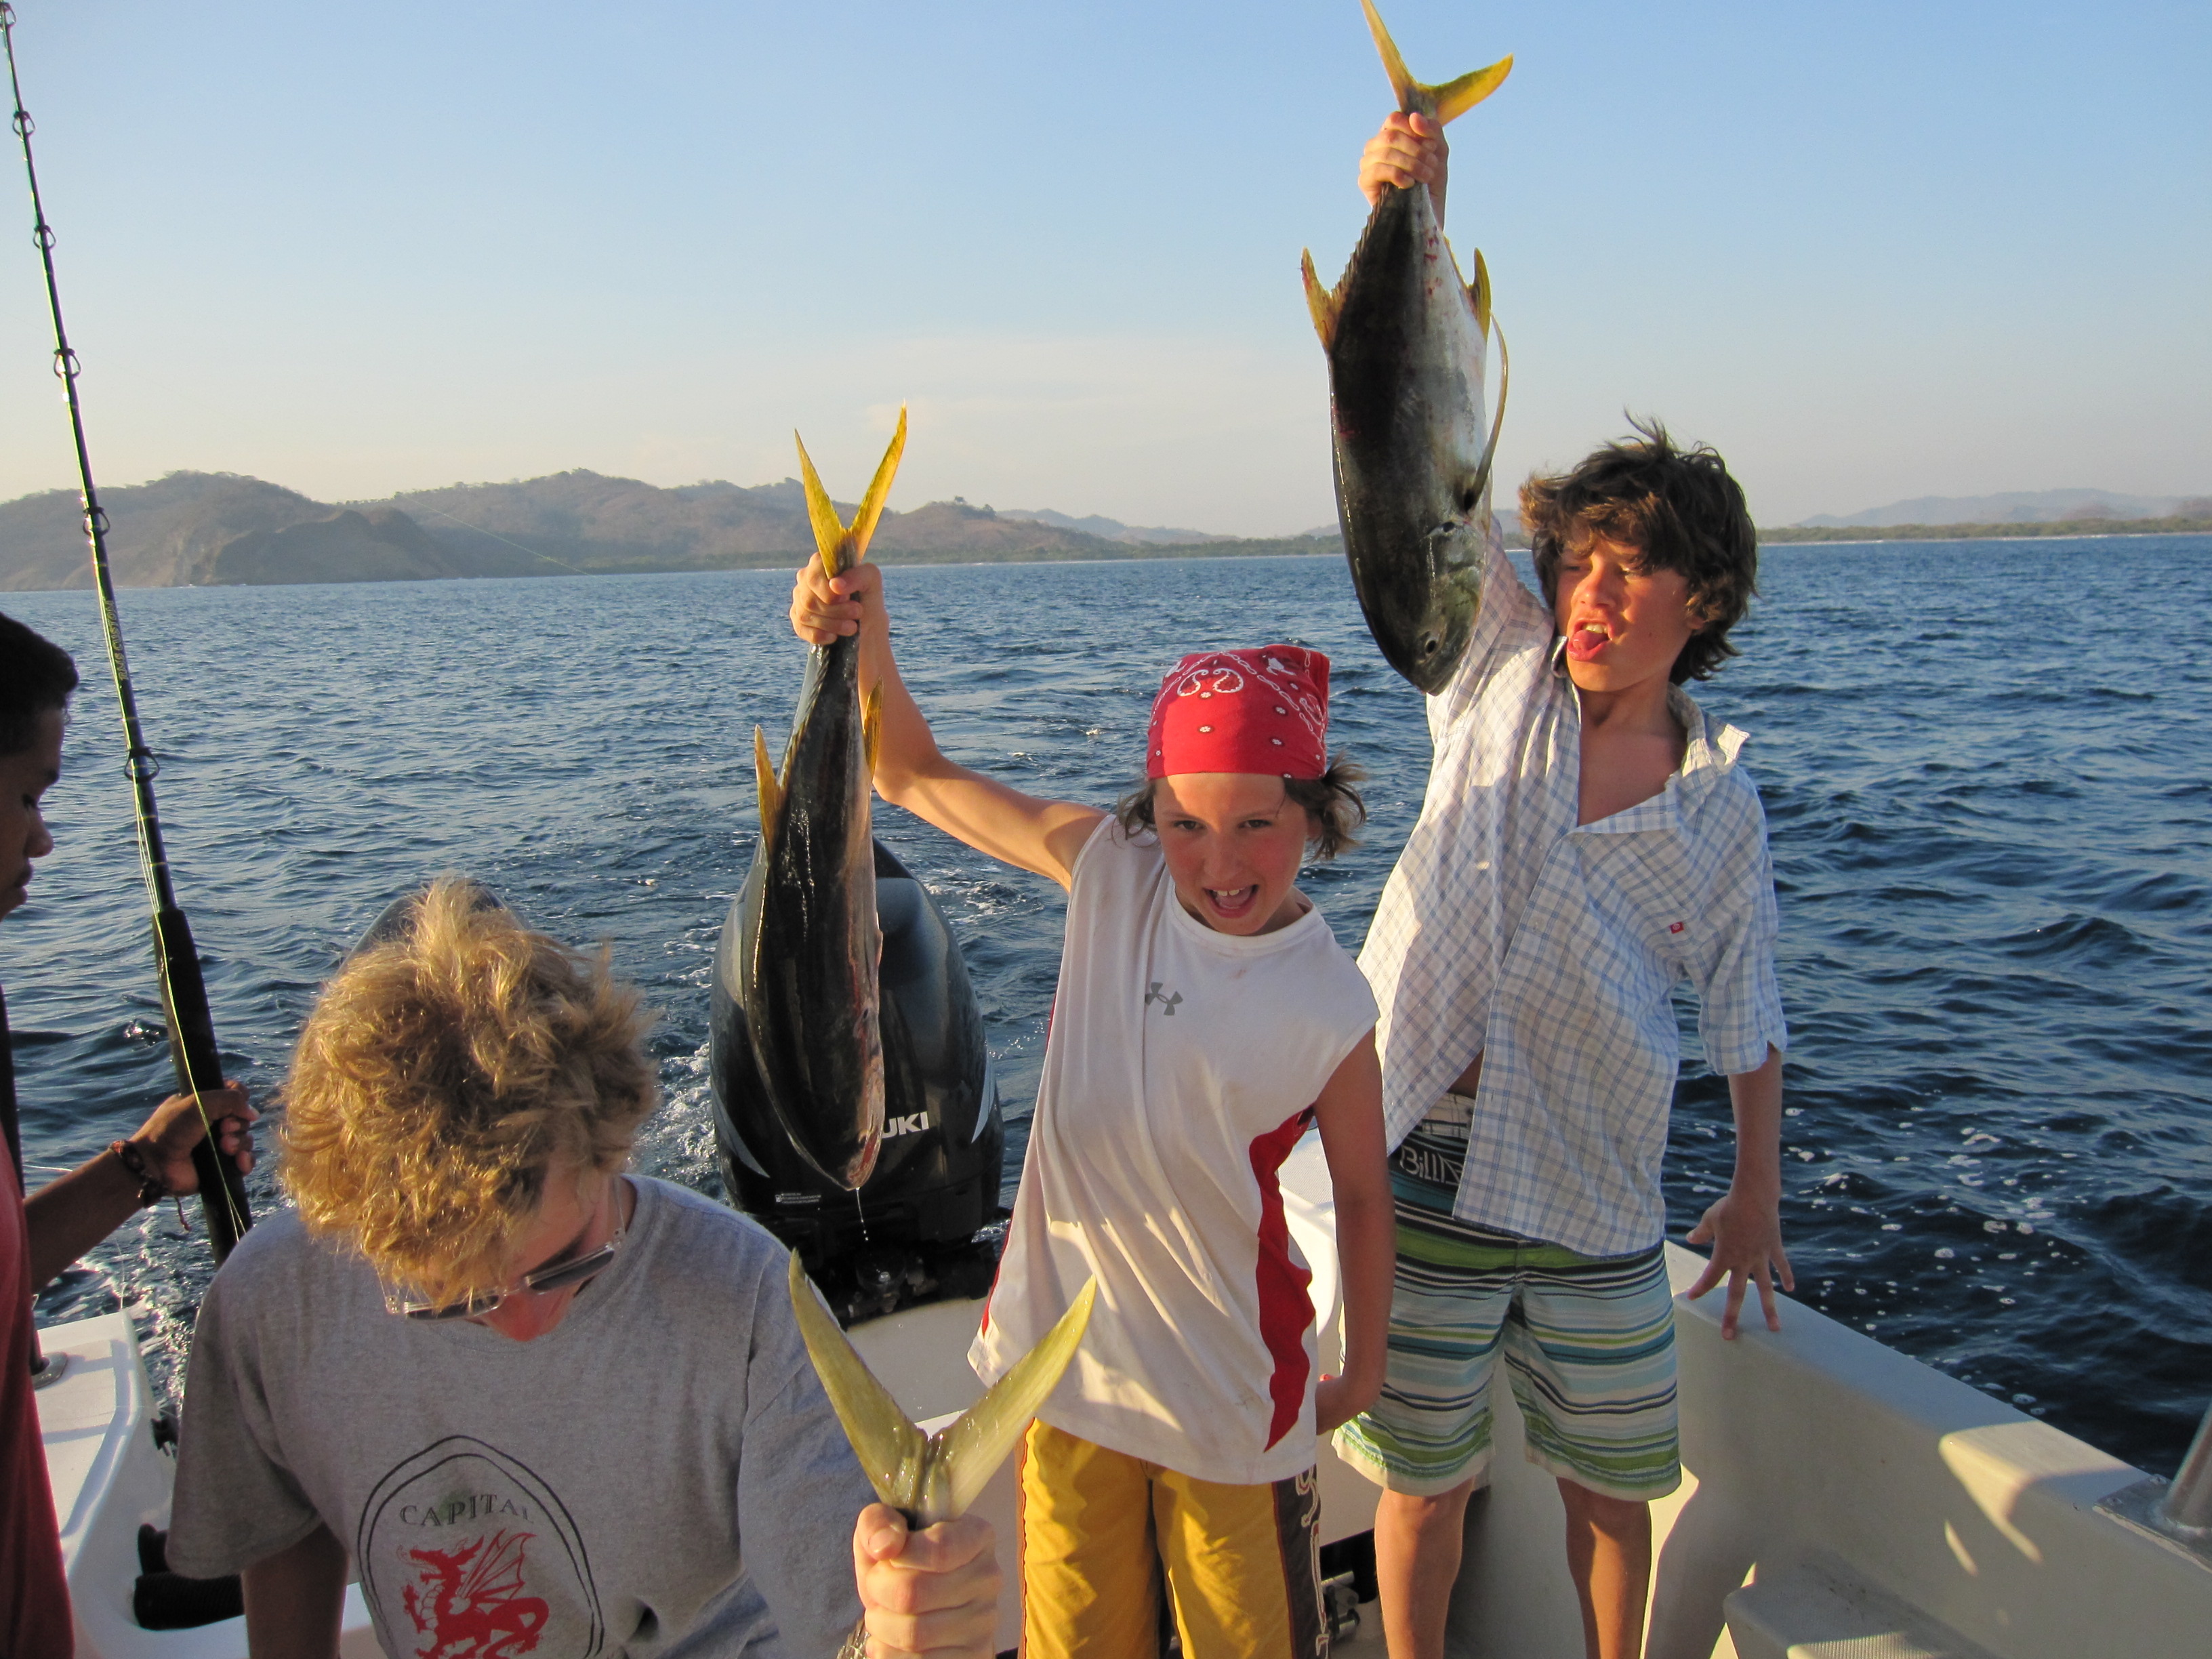 Coastal fishing in southwestern nicaragua mangorosanicaragua jack crevalle is a marine fish typically found in tropical warm waters this ones a powerful fighter and you may find yourself a little tired after the solutioingenieria Gallery